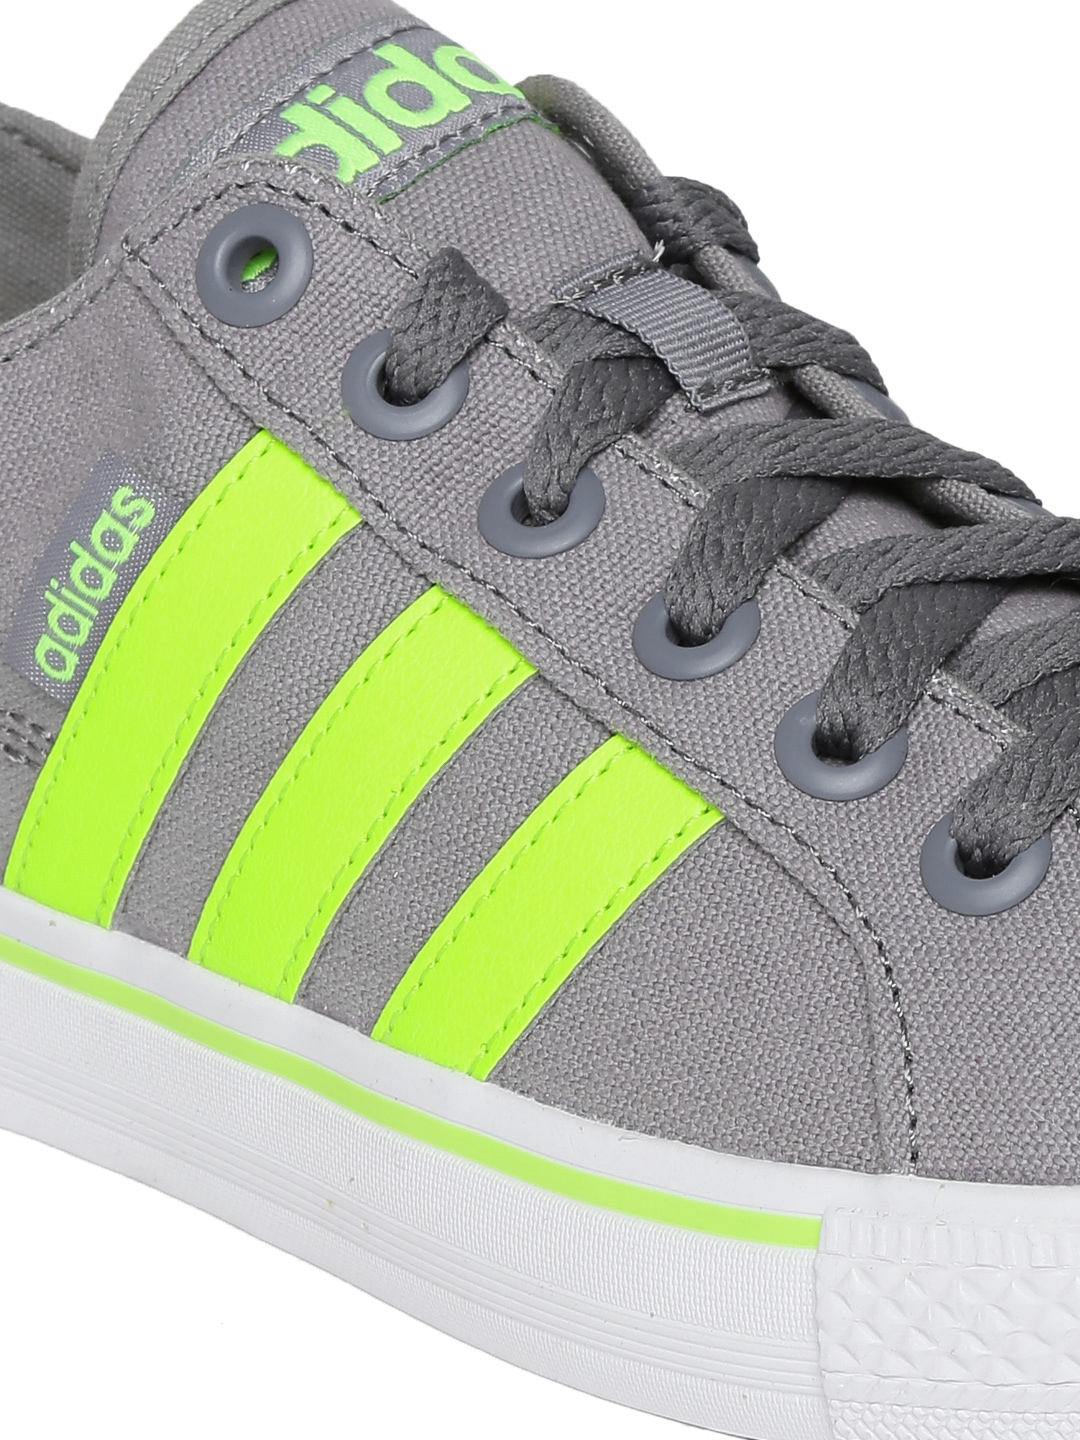 Adidas Neo Grey And Green